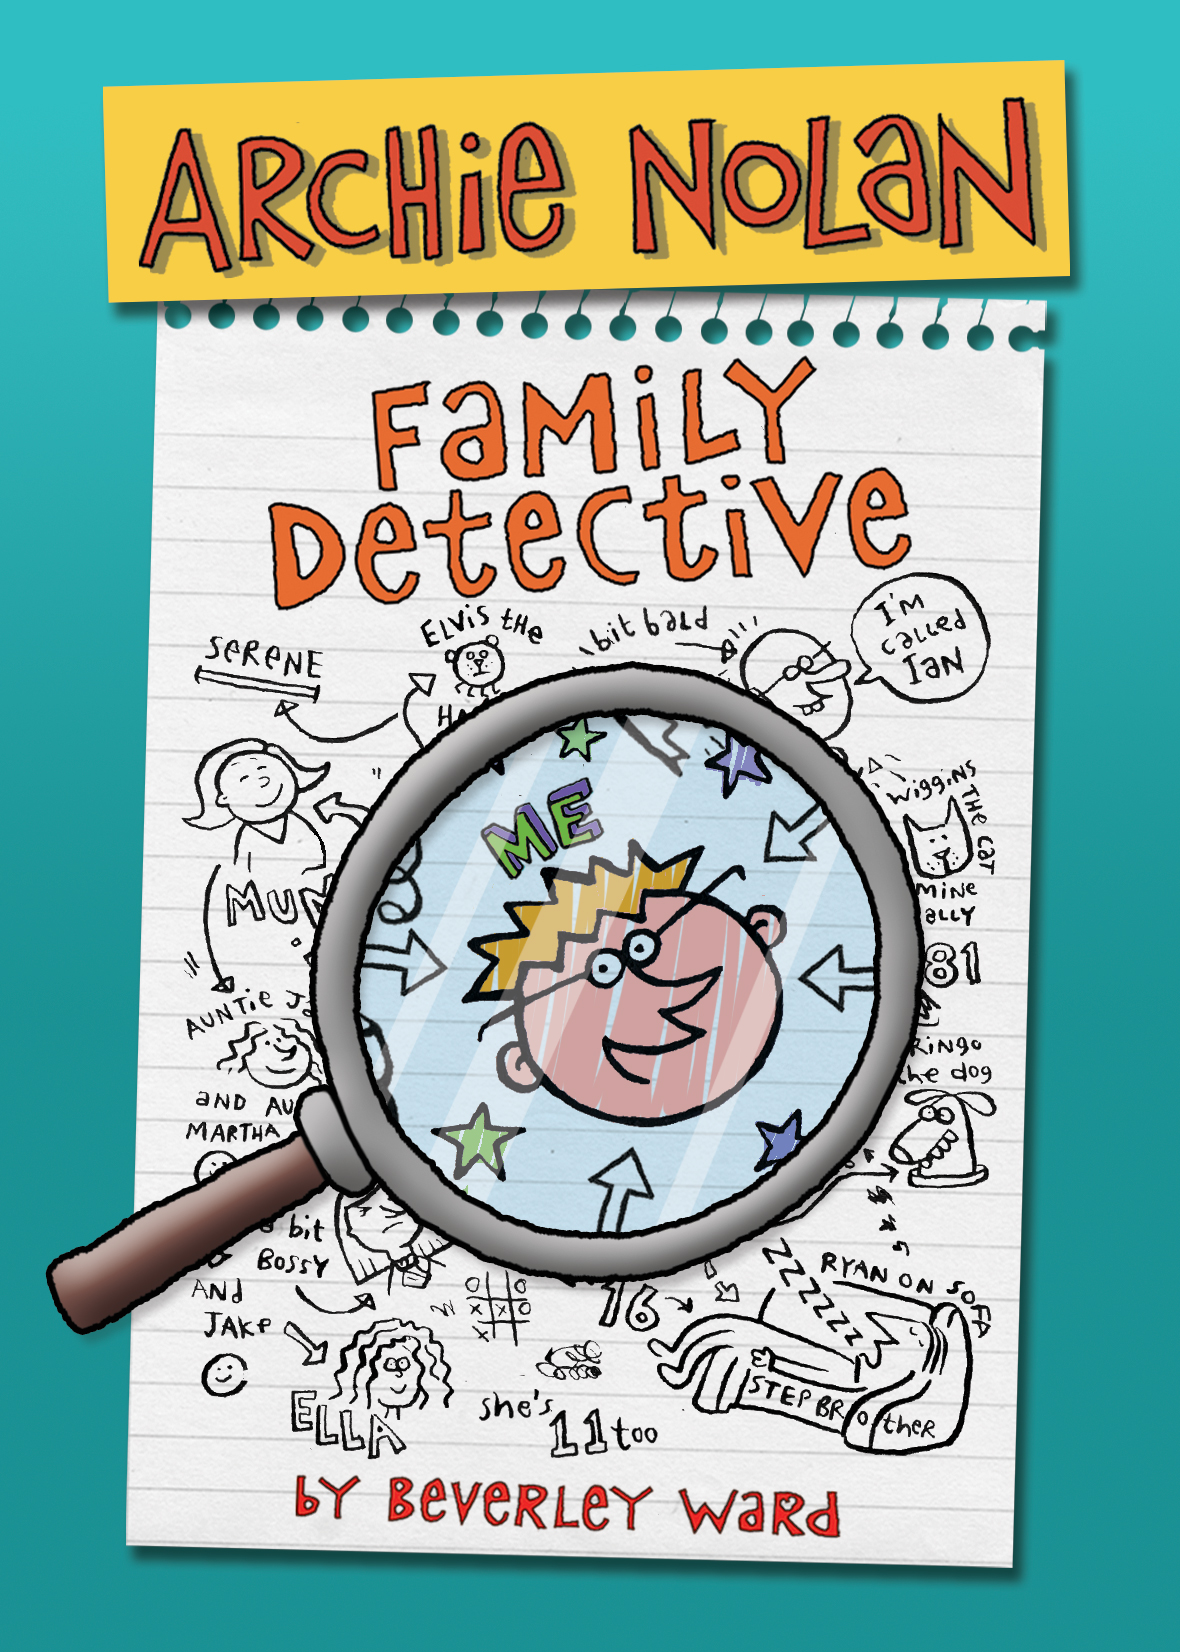 Archie Nolan: Family Detective - A funny, illustrated story for 8-12yr olds.Science geek Archie Nolan tries to keep a low profile, but when his class are told to research their family tree, he is terrified twin sister and school swot Jemima is going to reveal that they are donor conceived. Archie's in turmoil. He doesn't want to have to talk about all that embarrassing stuff. The only person who understands is his donor conceived friend Cameron, but he seems to have unearthed a village vampire…..and Archie's far more interested in investigating that!Open Archie's secret diary and join him and his friends on an action-packed adventure to find out what family really means.